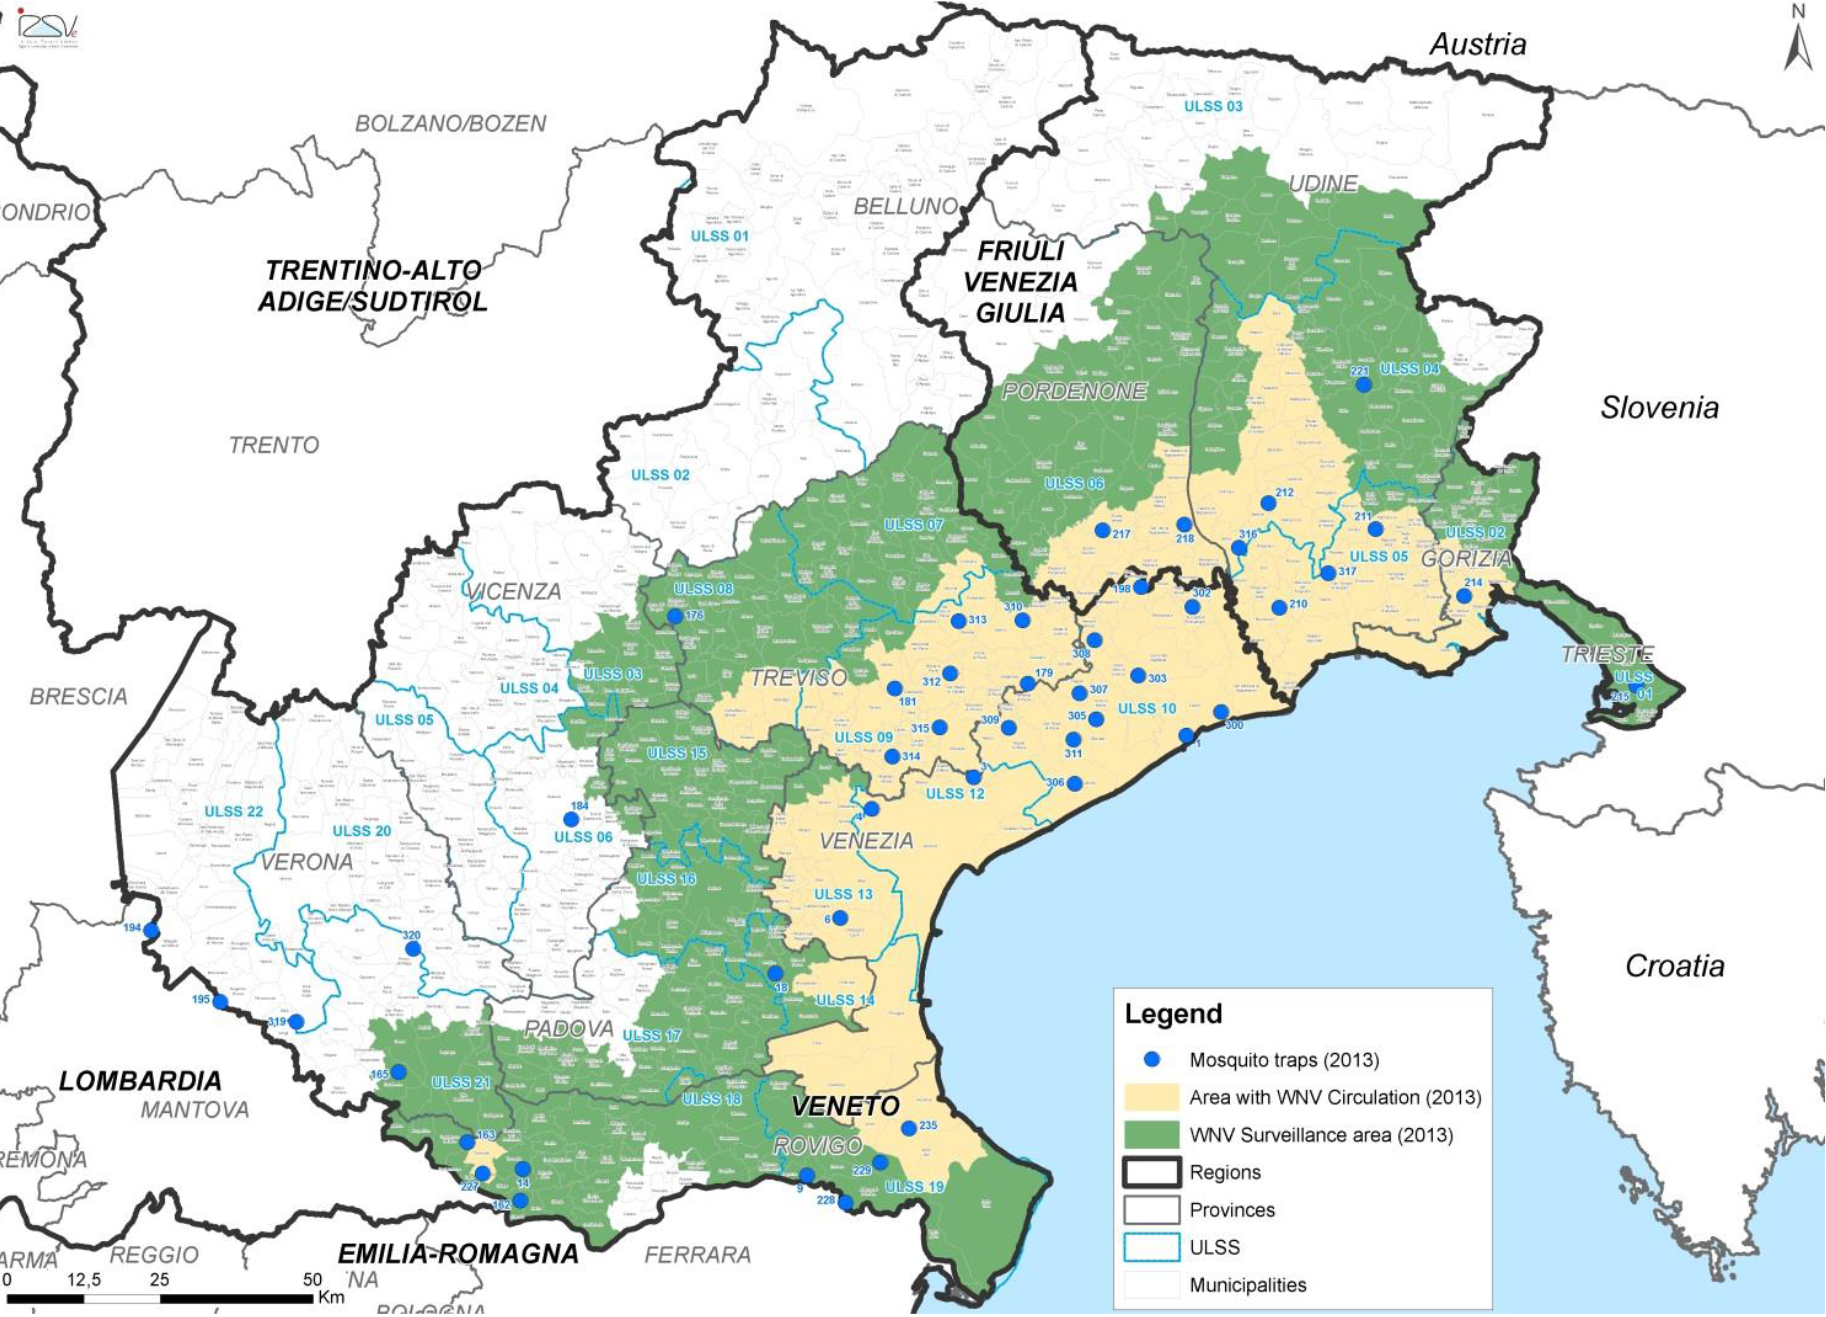 Mosquito traps in North East Italy